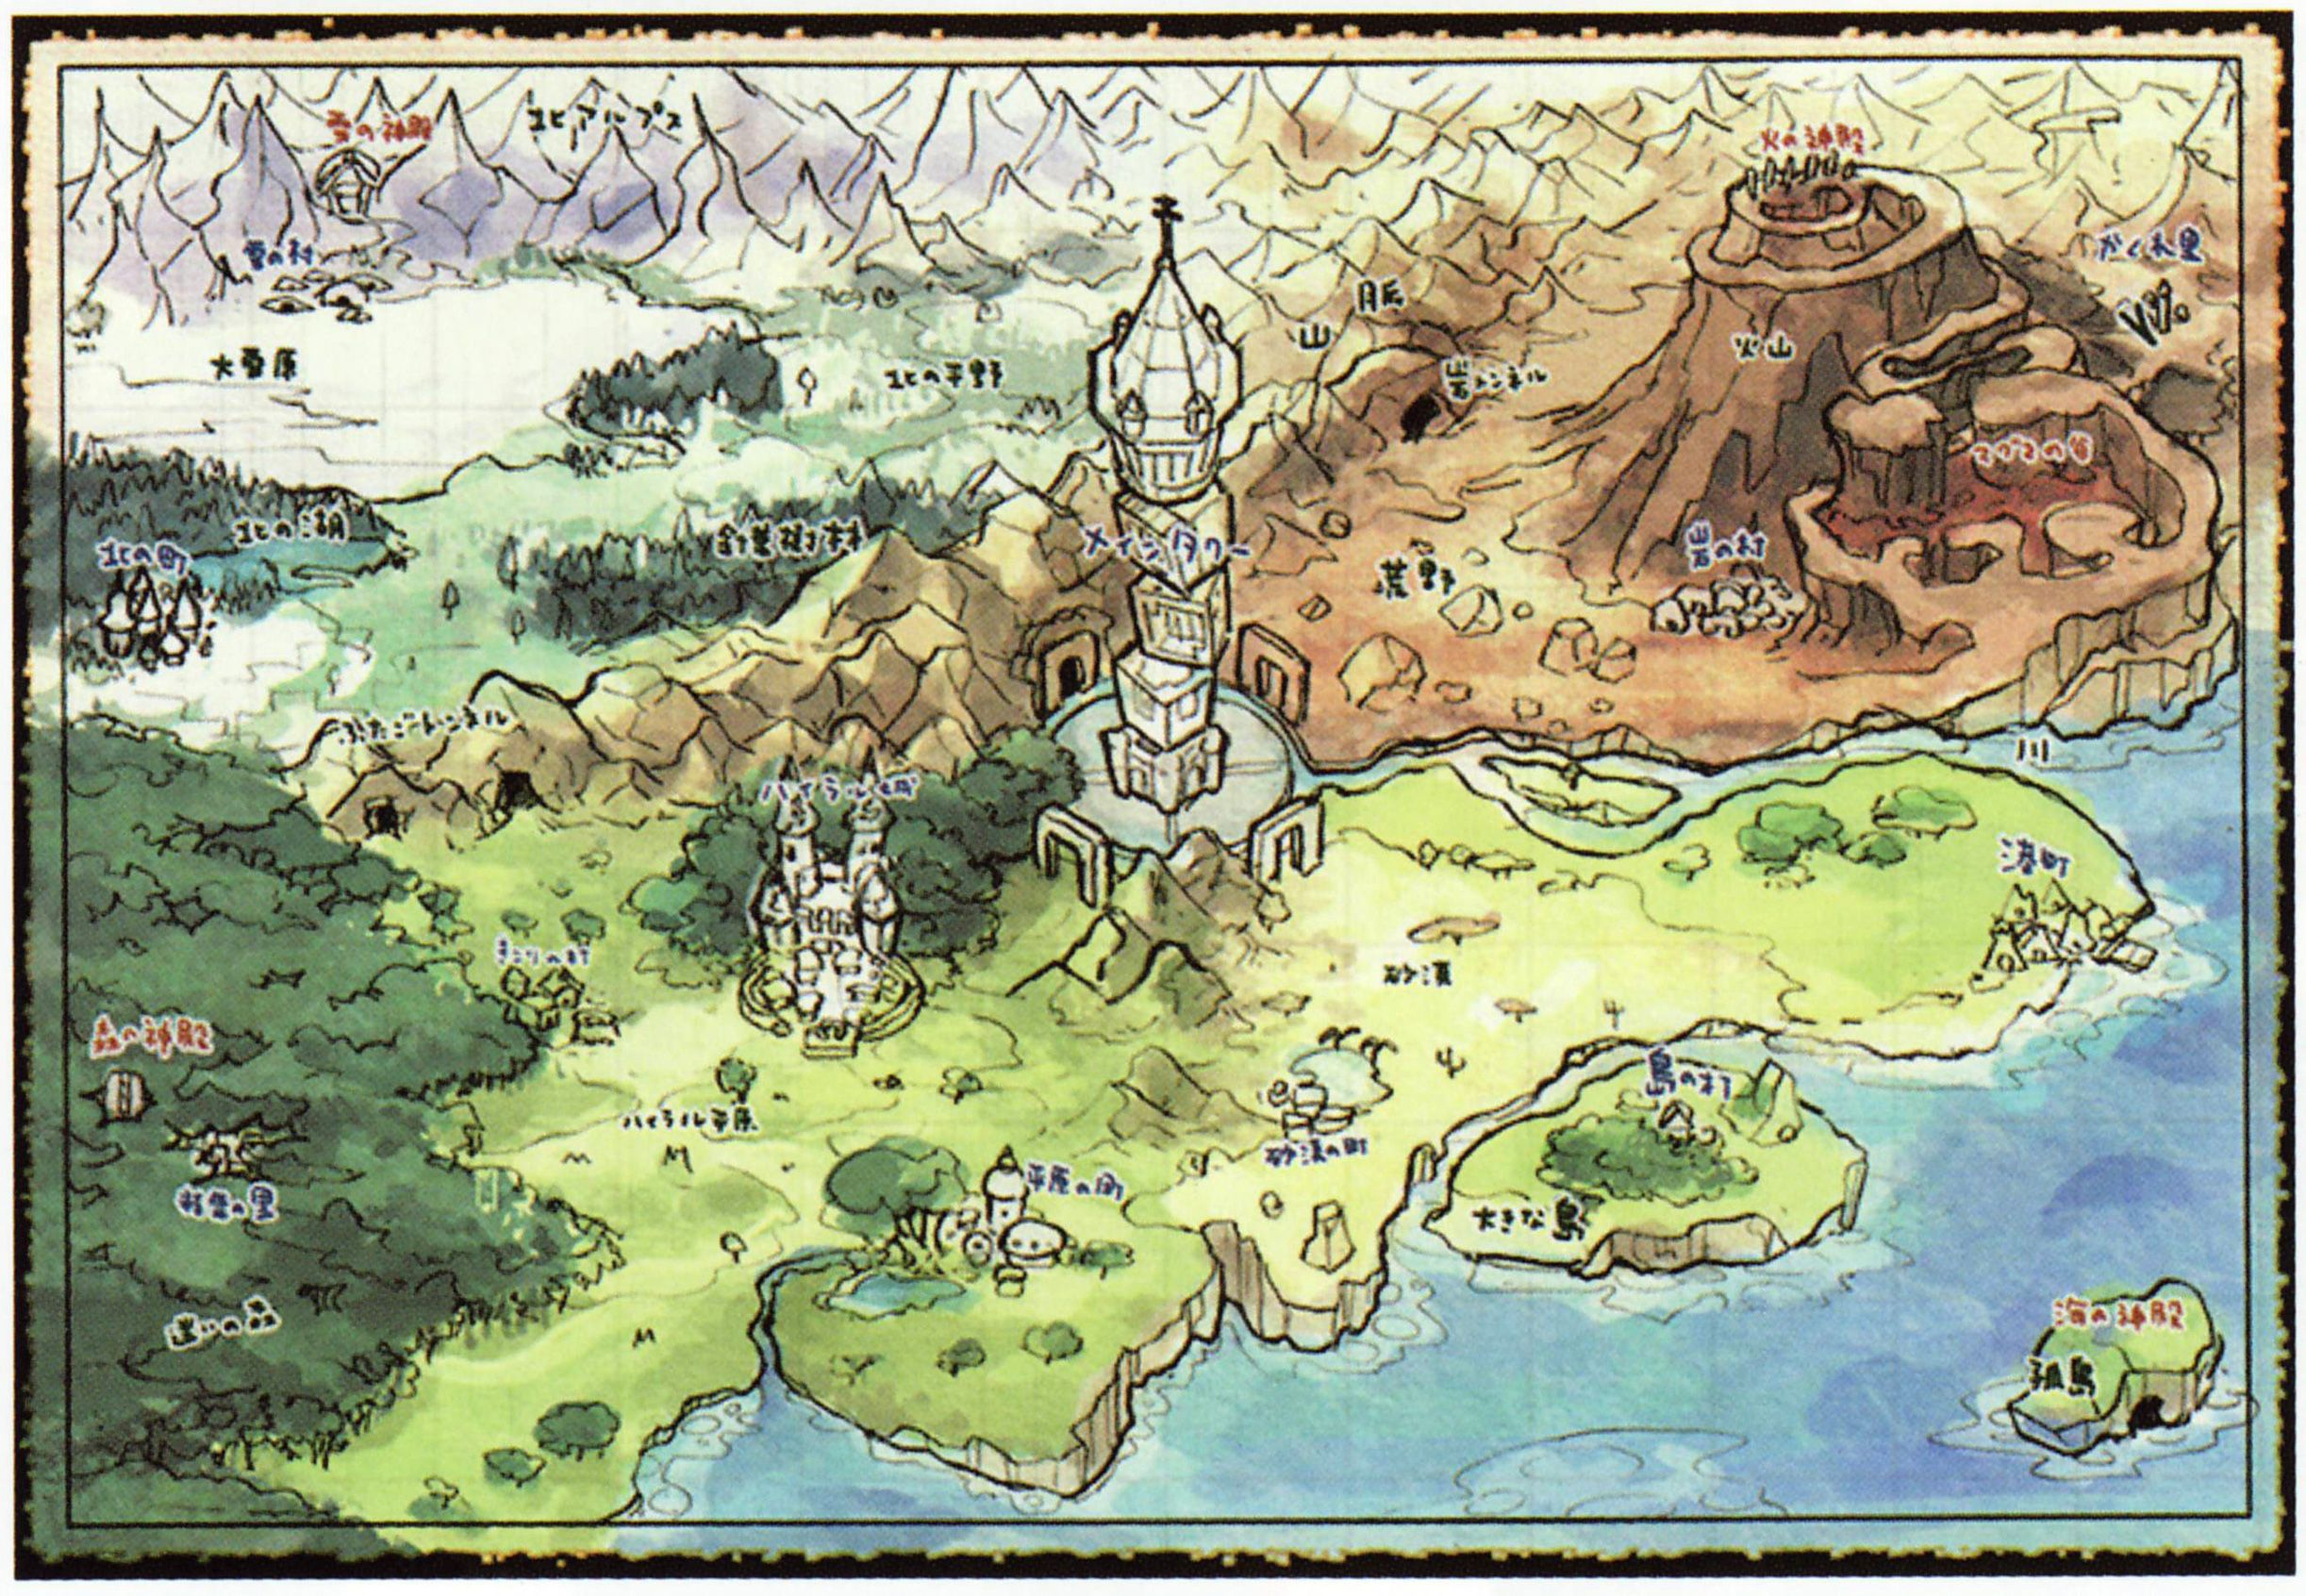 690125179563f37c1ca6o pinterest fantasy map and the legend of zelda spirit tracks ds official artwork gumiabroncs Choice Image